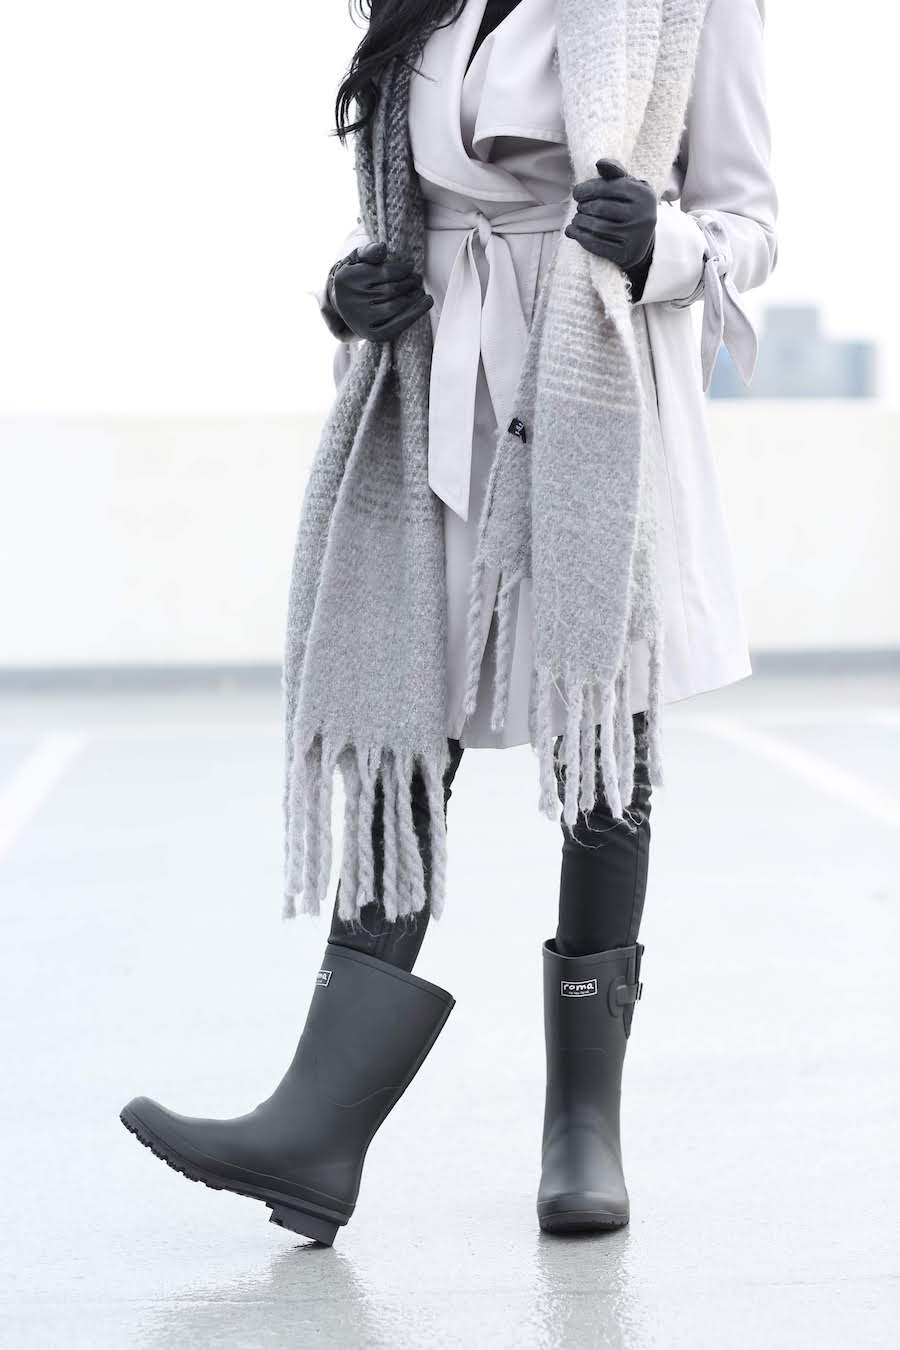 Beat April Showers with These Sustainable Rain Boots ROMA Boots 2